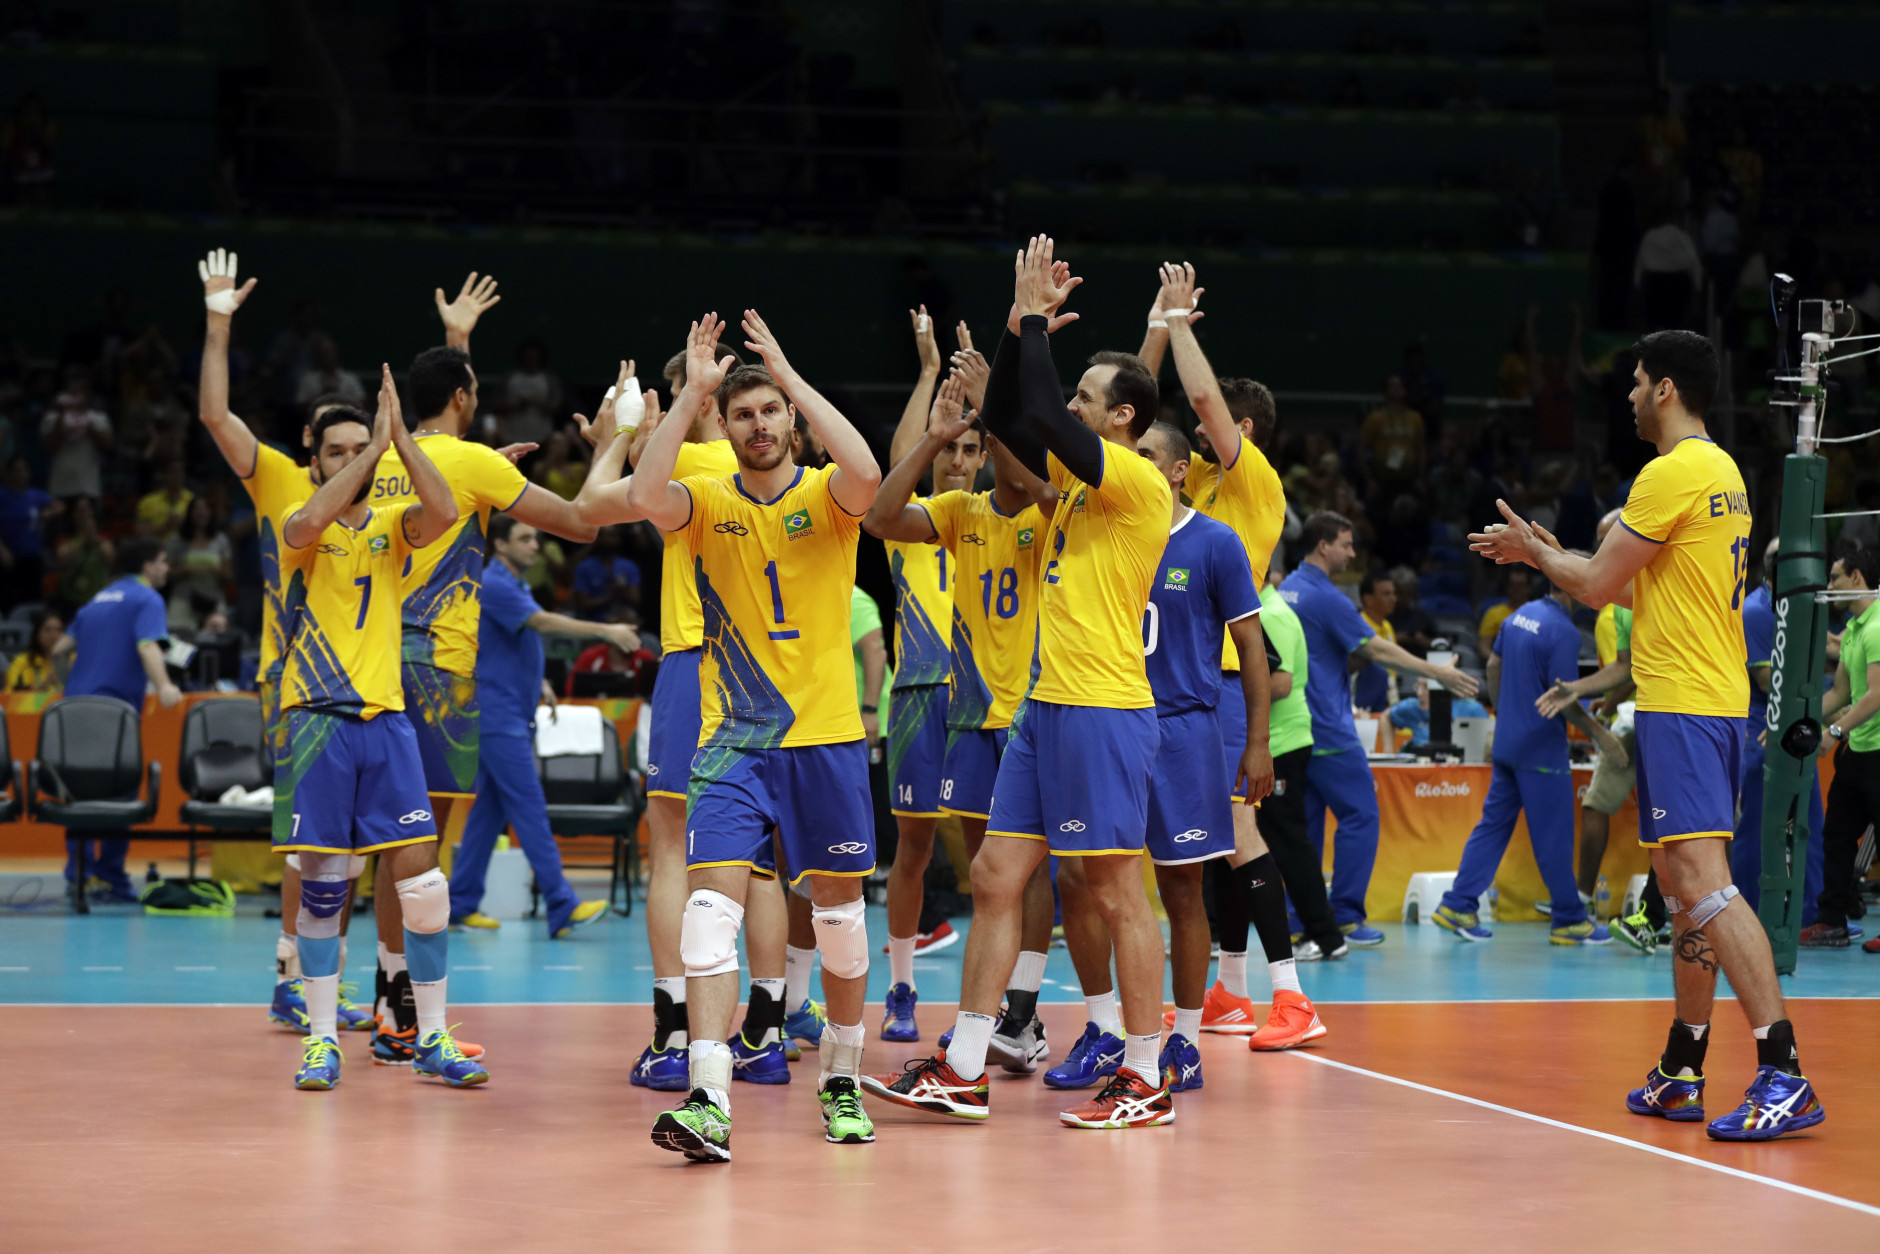 Members of team Brazil celebrate after defeating Mexico during a men's preliminary volleyball match at the 2016 Summer Olympics in Rio de Janeiro, Brazil, Sunday, Aug. 7, 2016. (AP Photo/Matt Rourke)